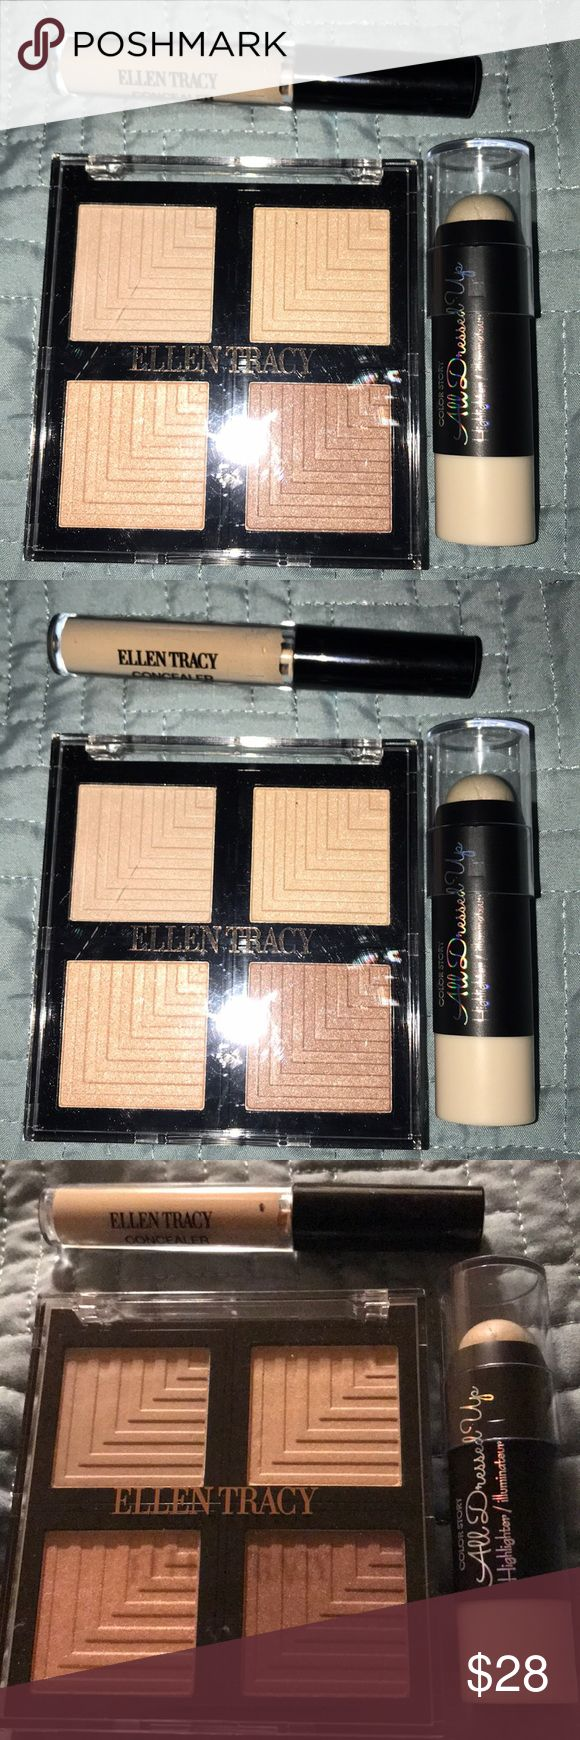 Make-Up Bundle of Three •Make-Up Bundle of Three   For color see pictures please •Ellen Tracy— Eye And Face Illuminator  •Ellen Tracy— Concealer  •Color Story — Highlighter Color Story / Ellen Tracy Makeup